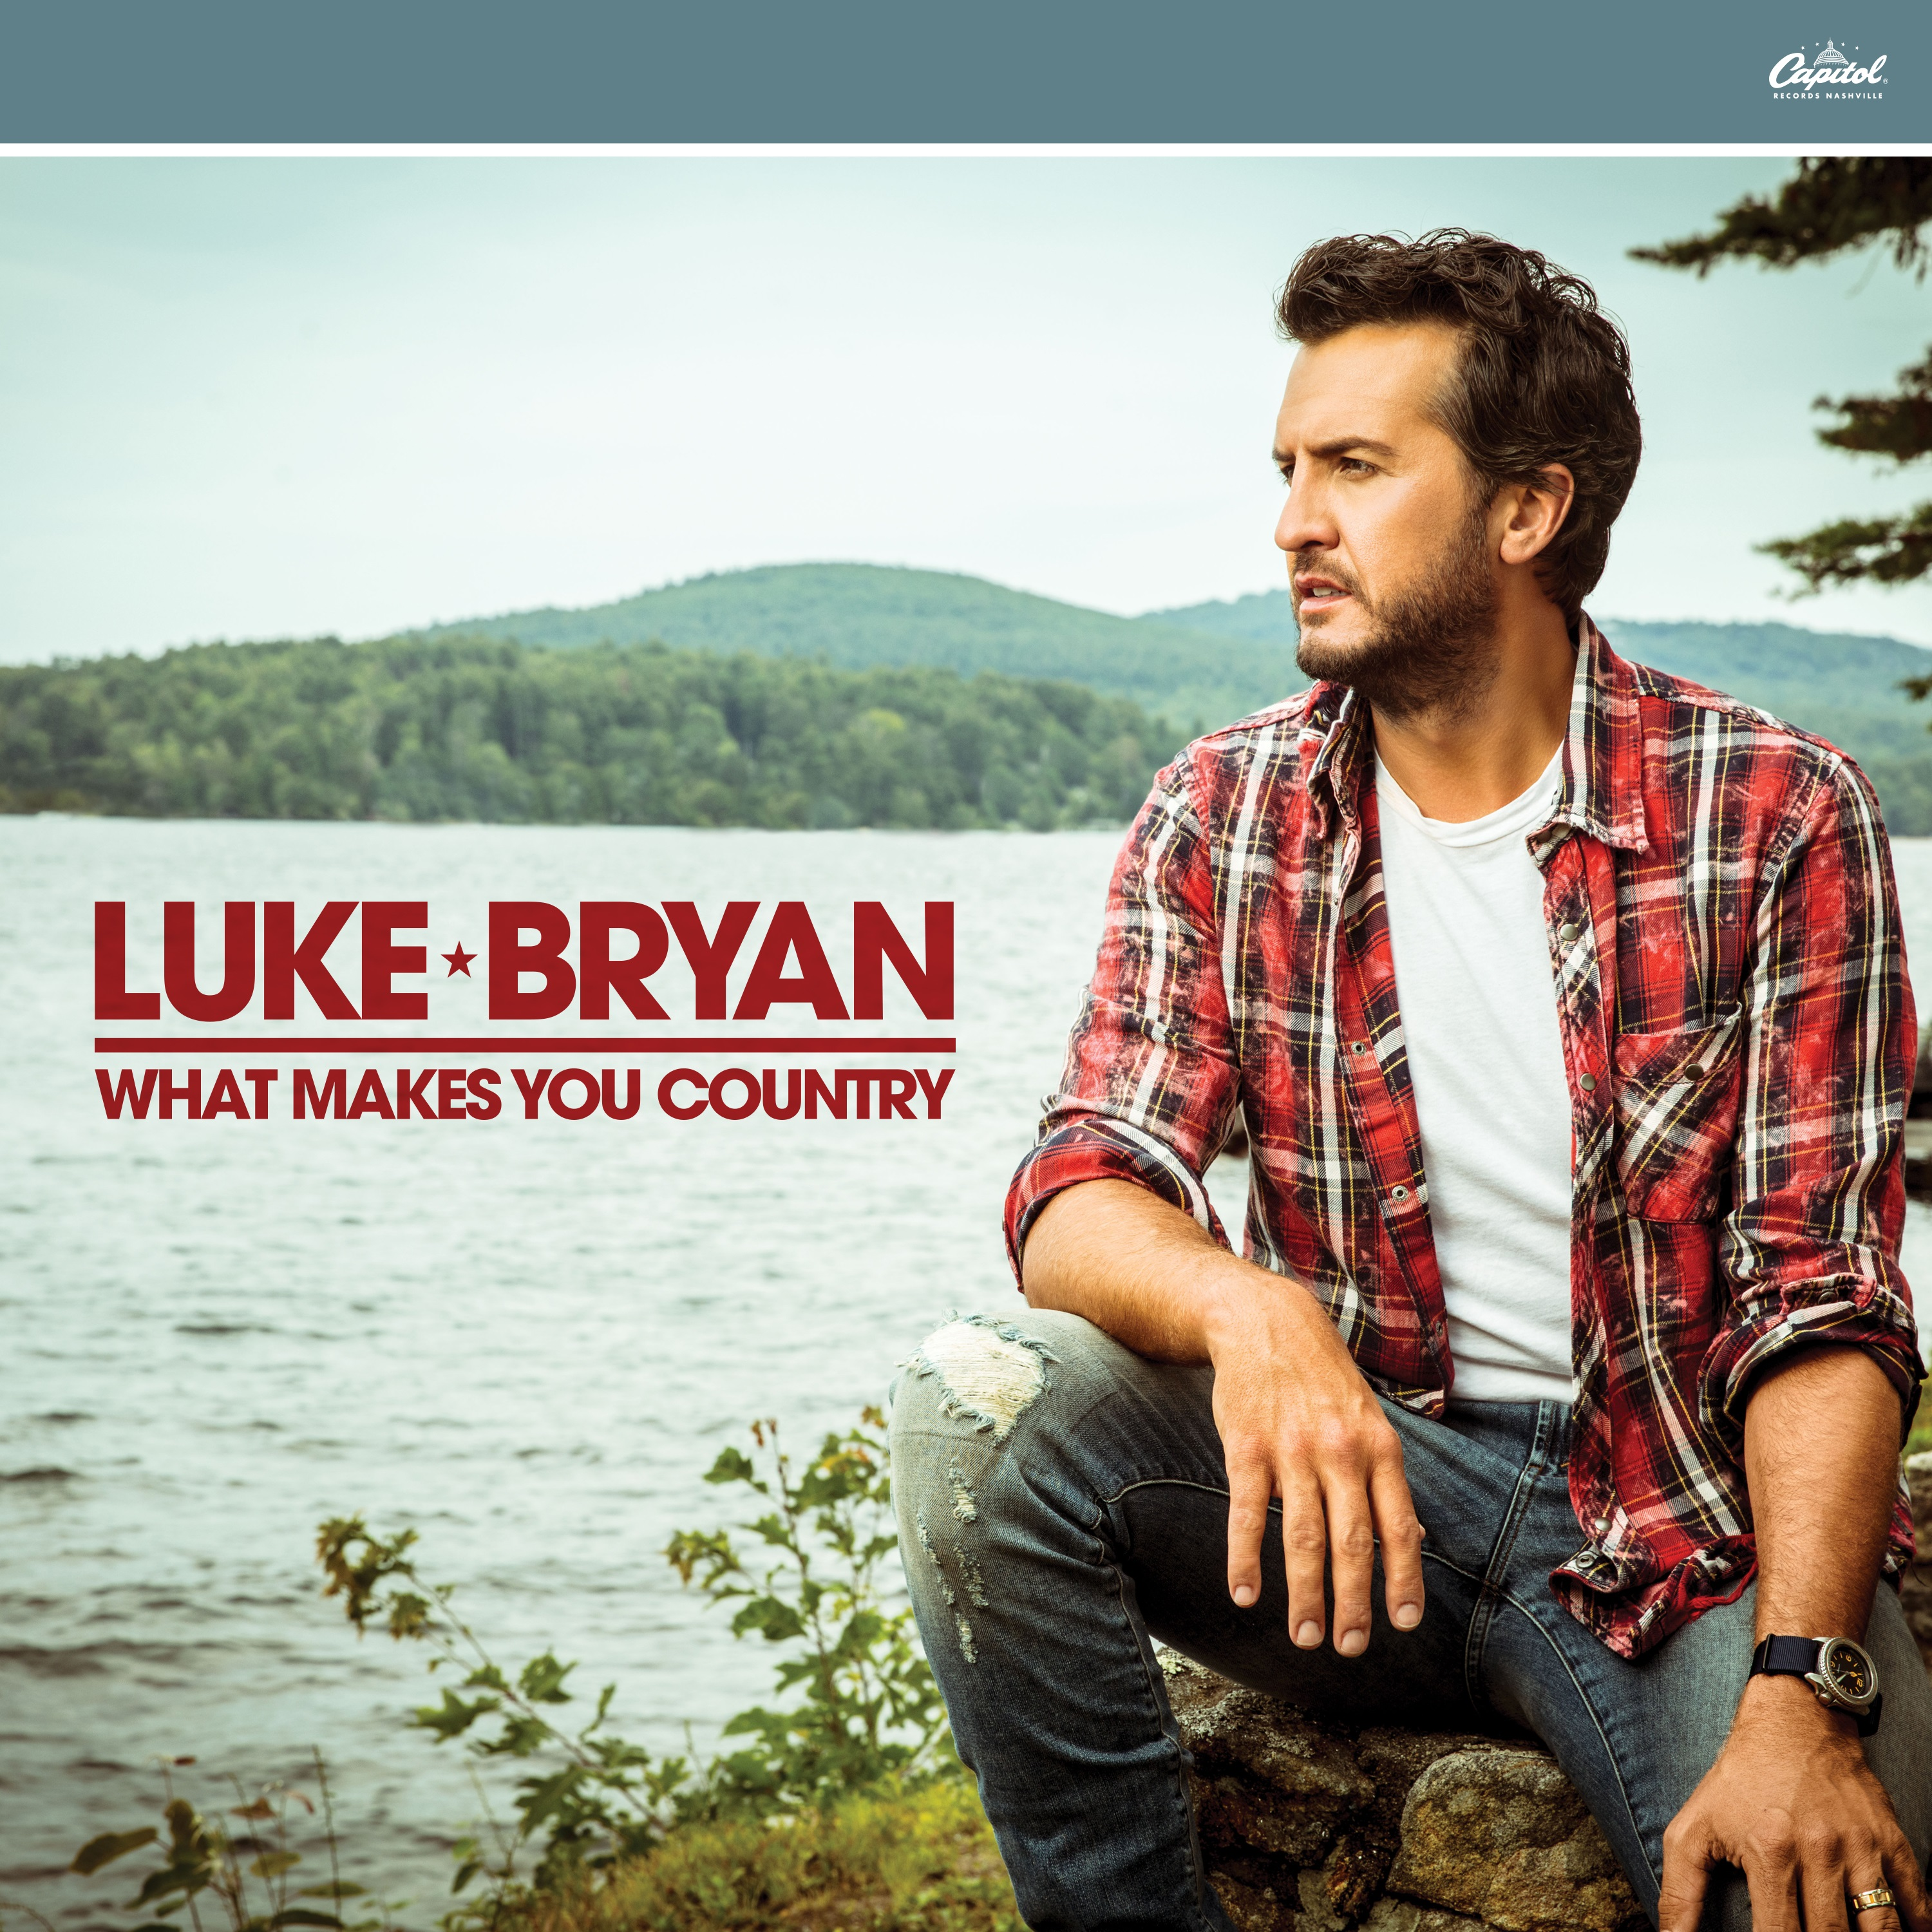 Album Review: Luke Bryan's 'What Makes You Country'